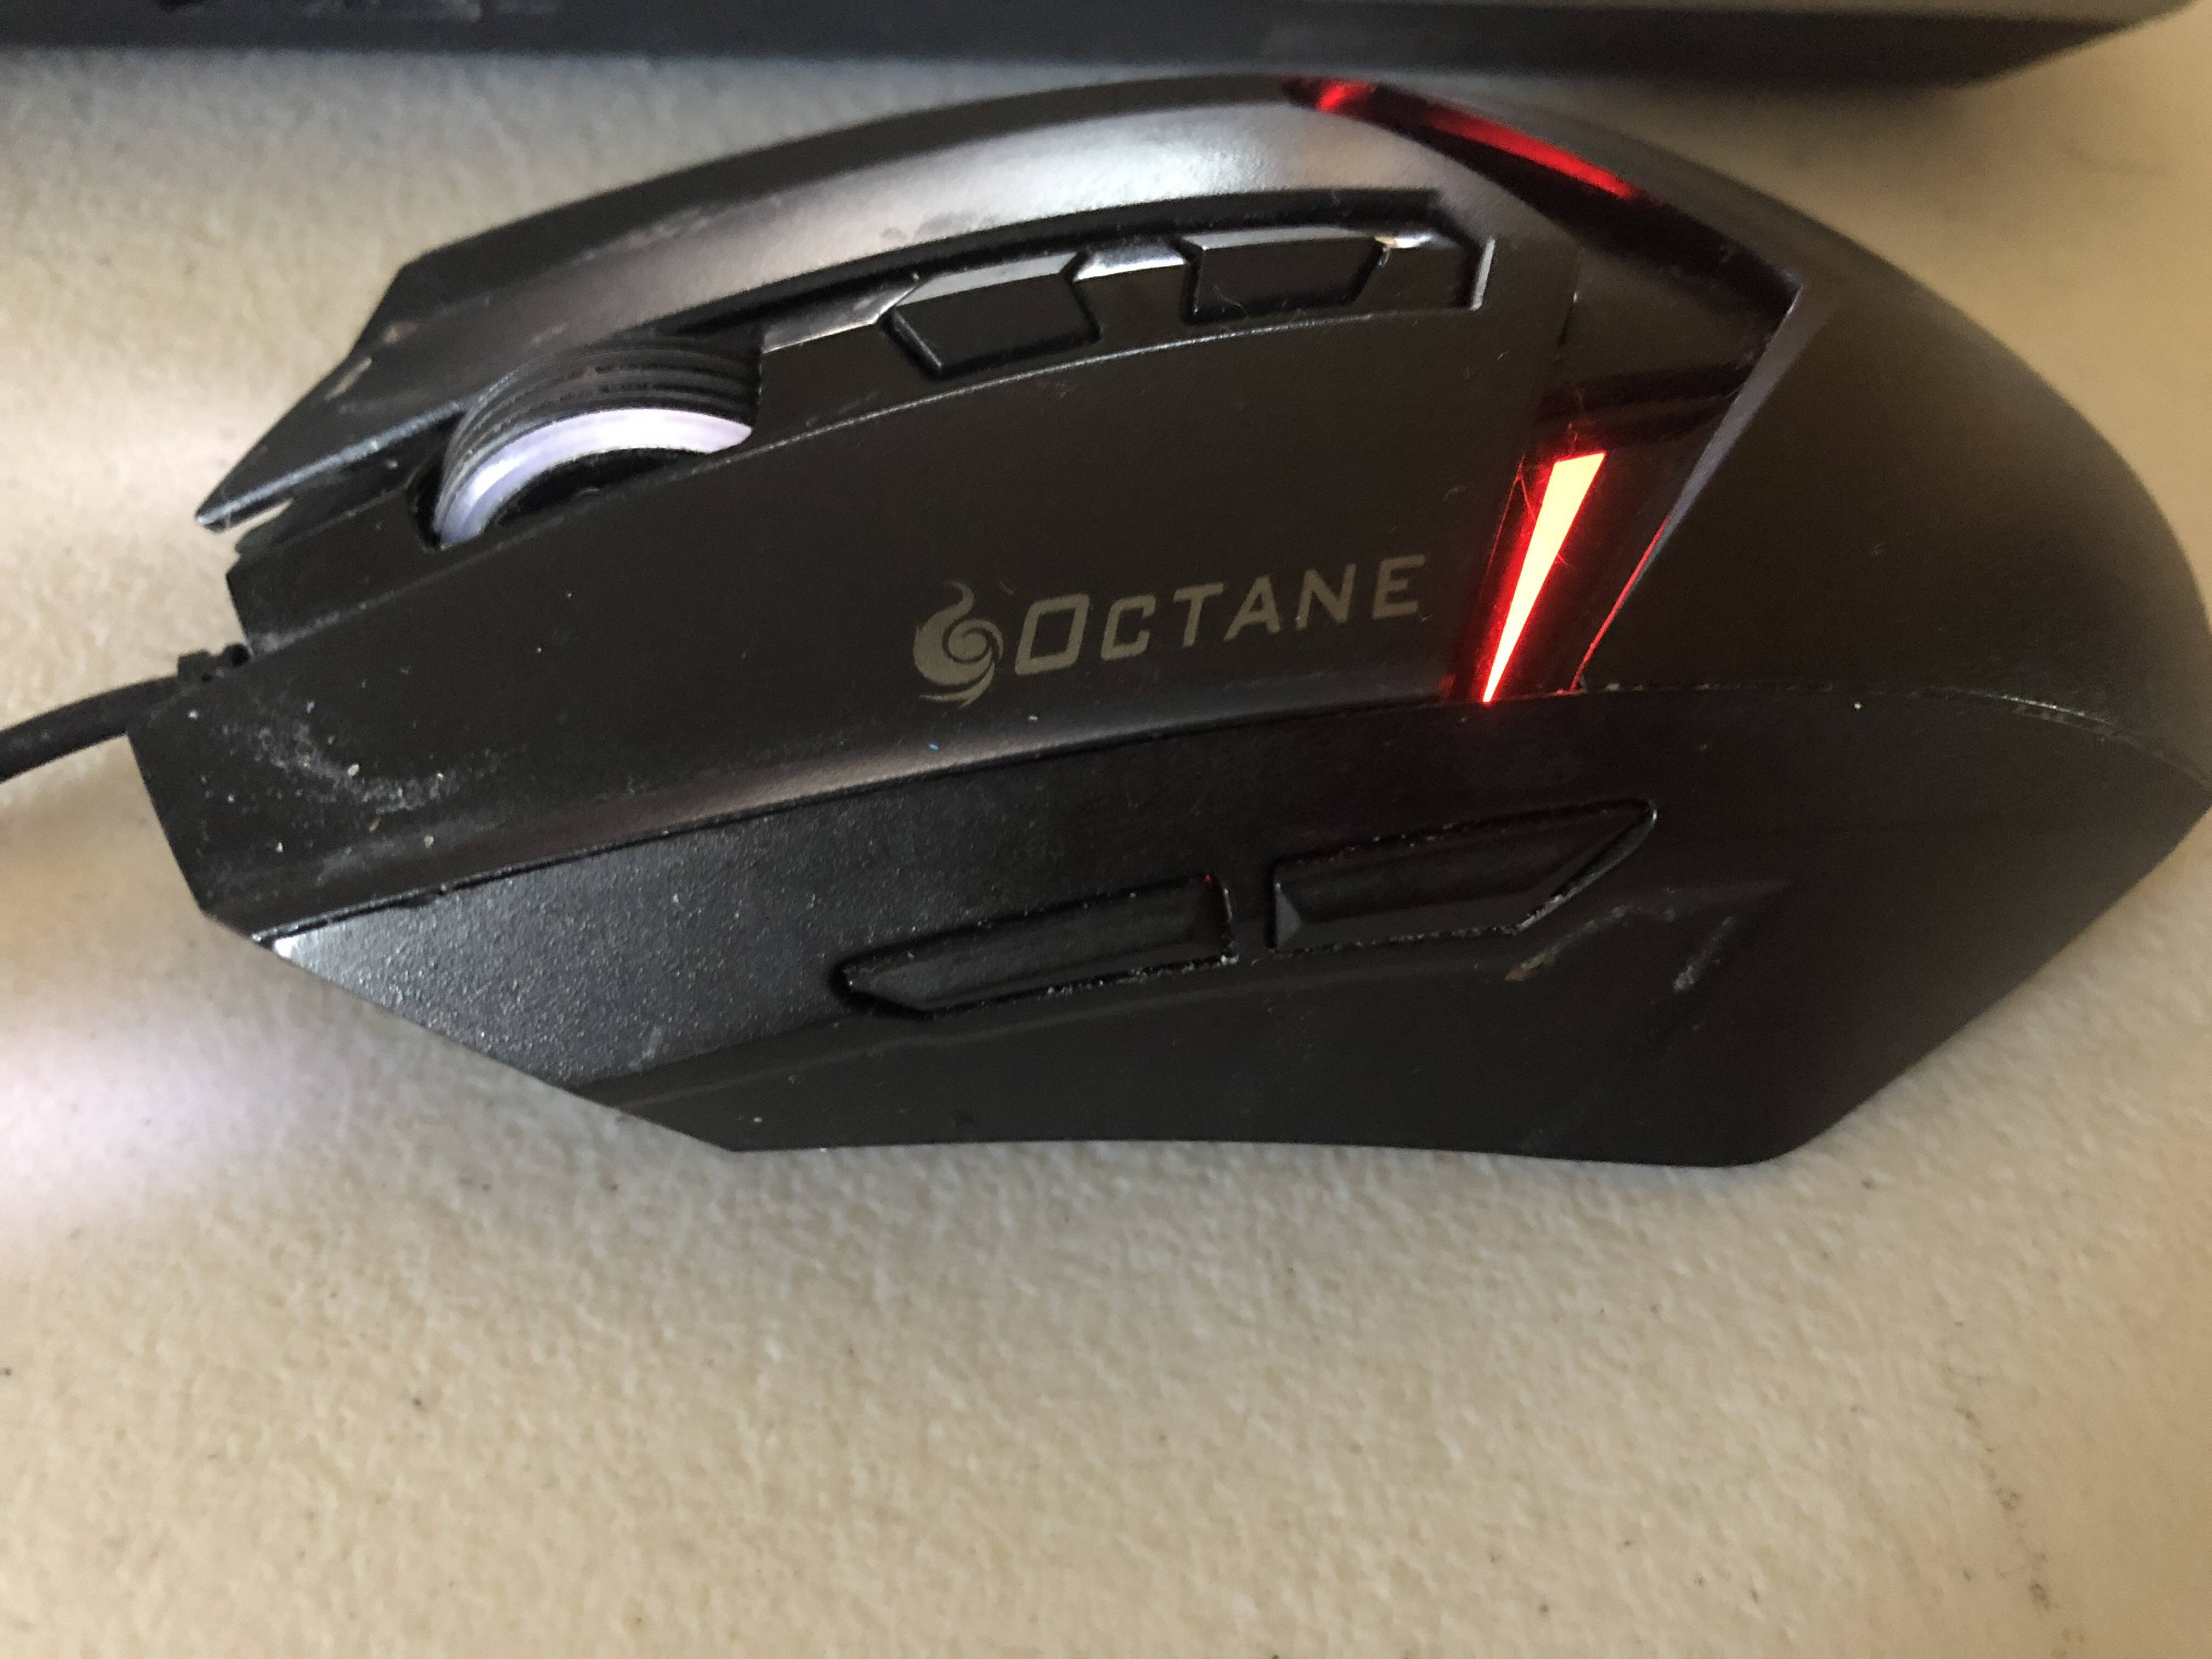 cf9fa945007 I don't need any buttons on the side, I don't need any rgb lights, I just  want a comfortable mouse that can withstand competitive gaming.